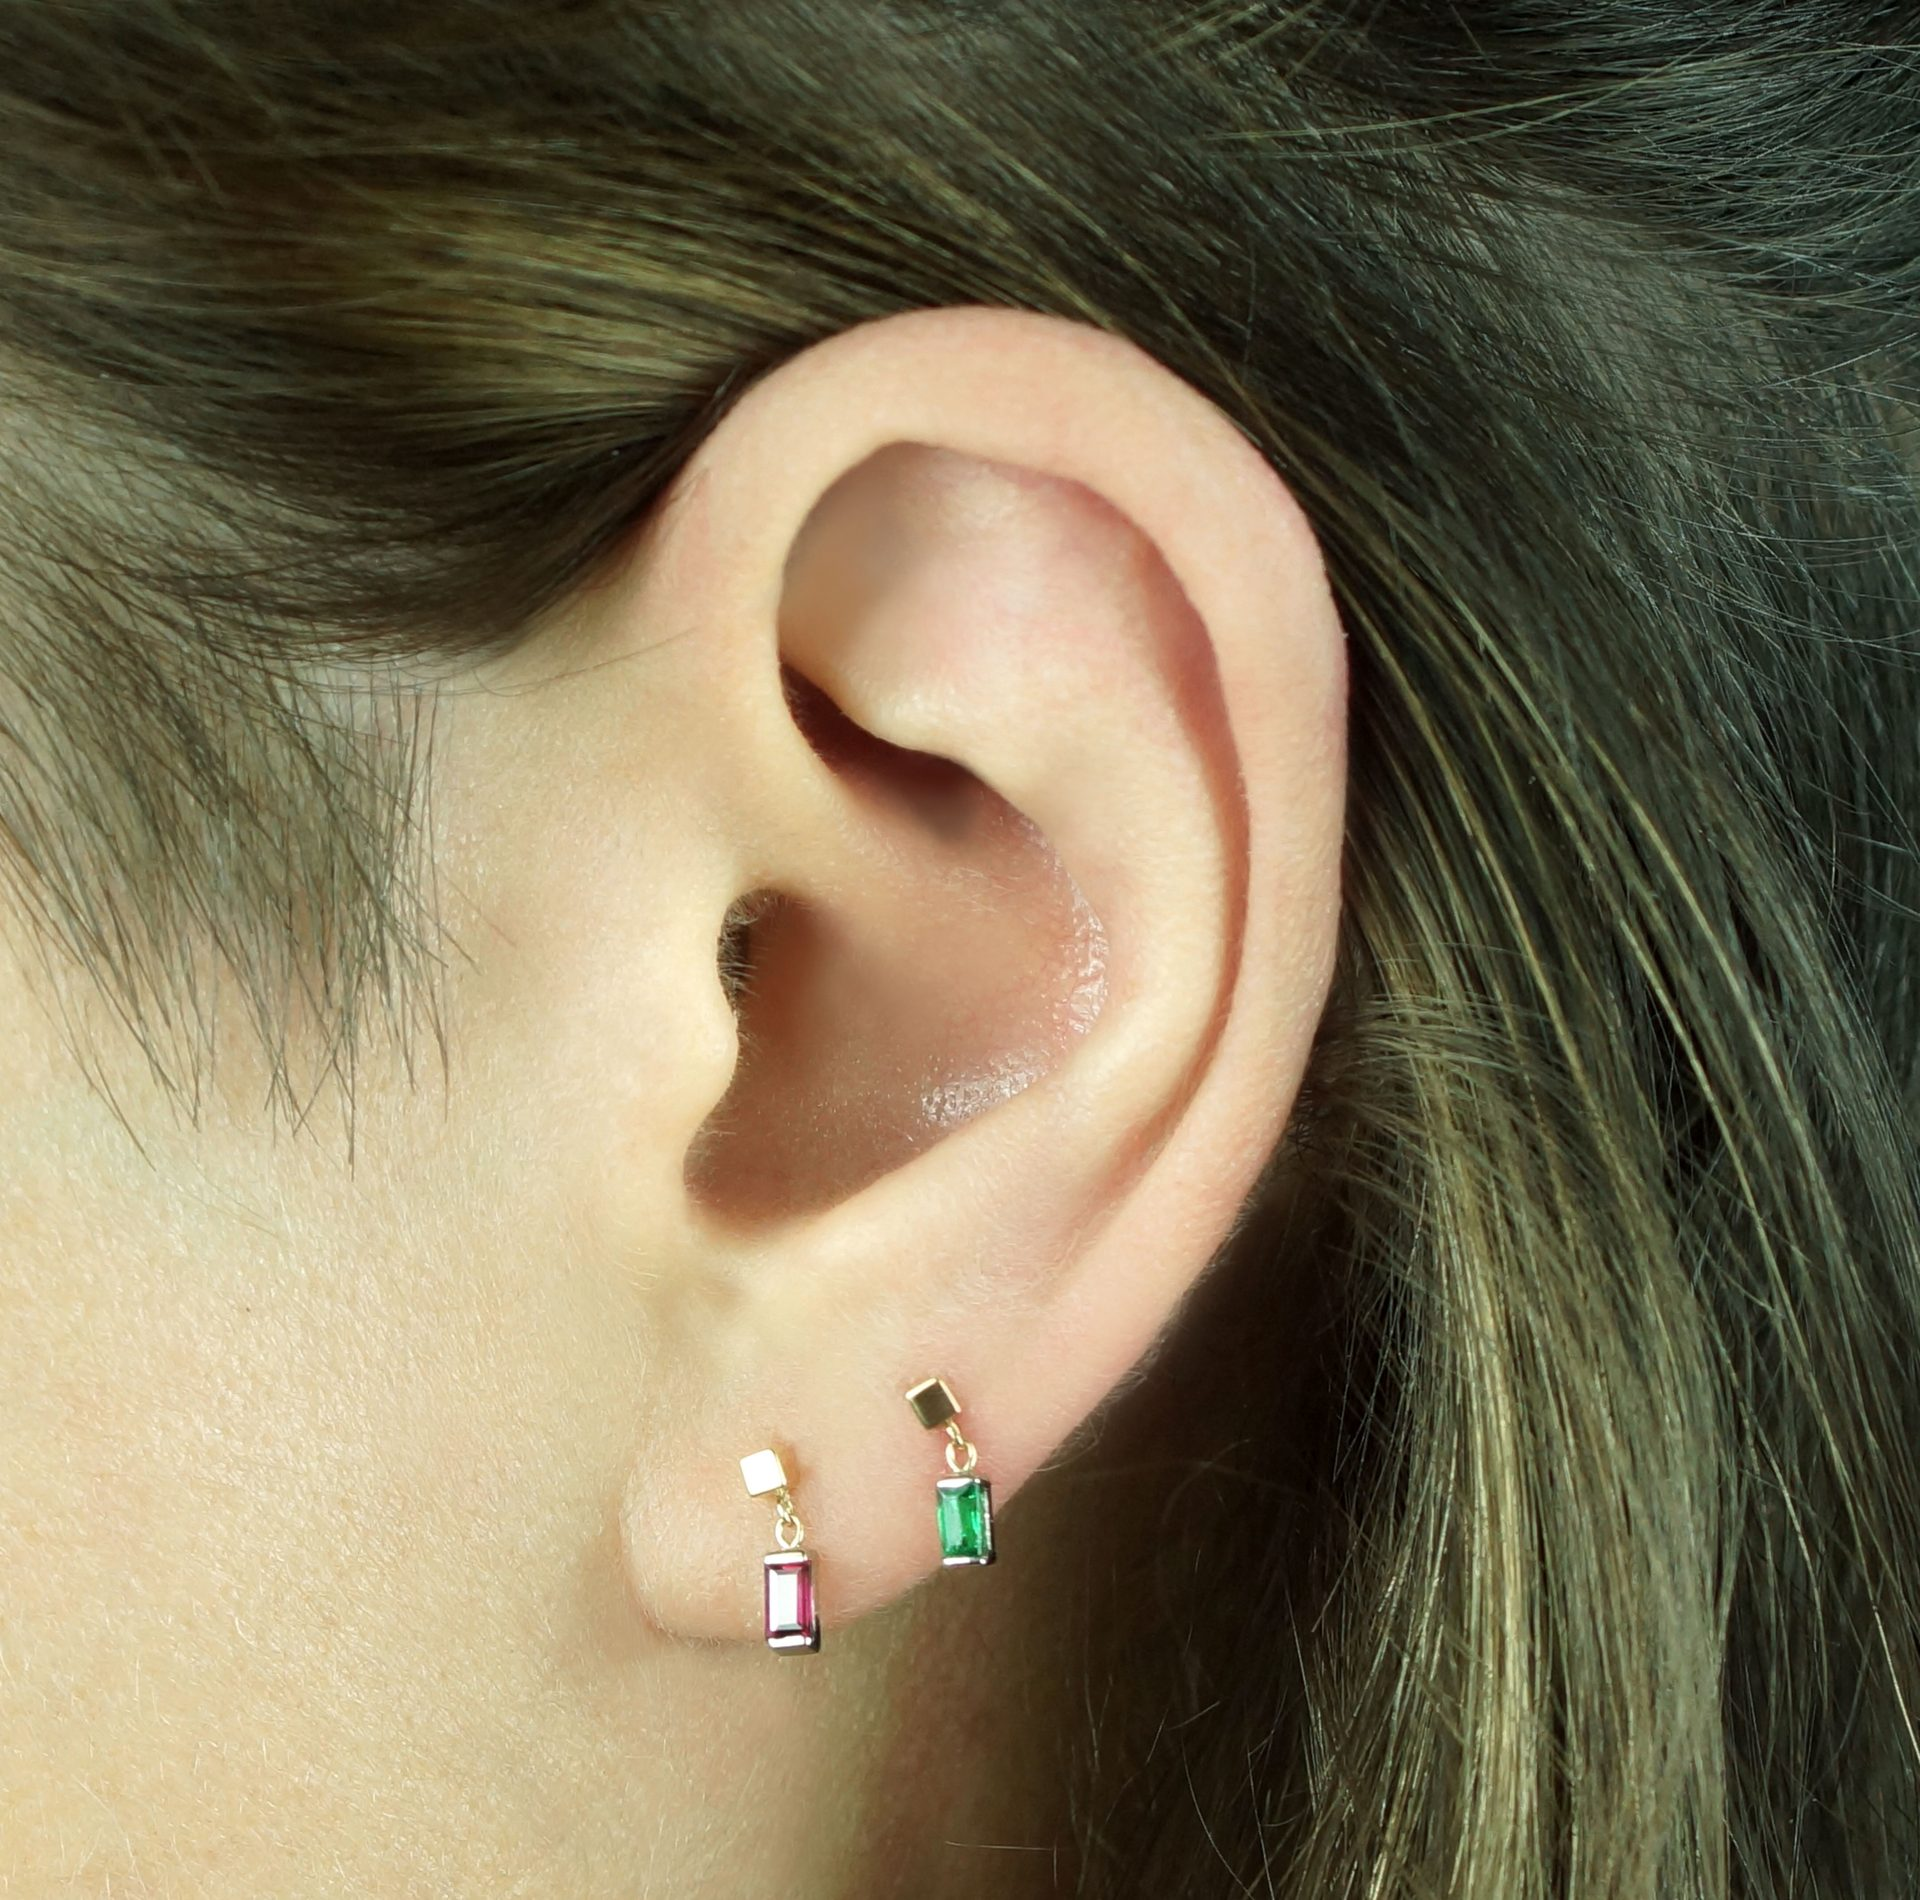 emerald-cartilage-piercing-earring-handmade-from-18k-yellow-and-white-gold